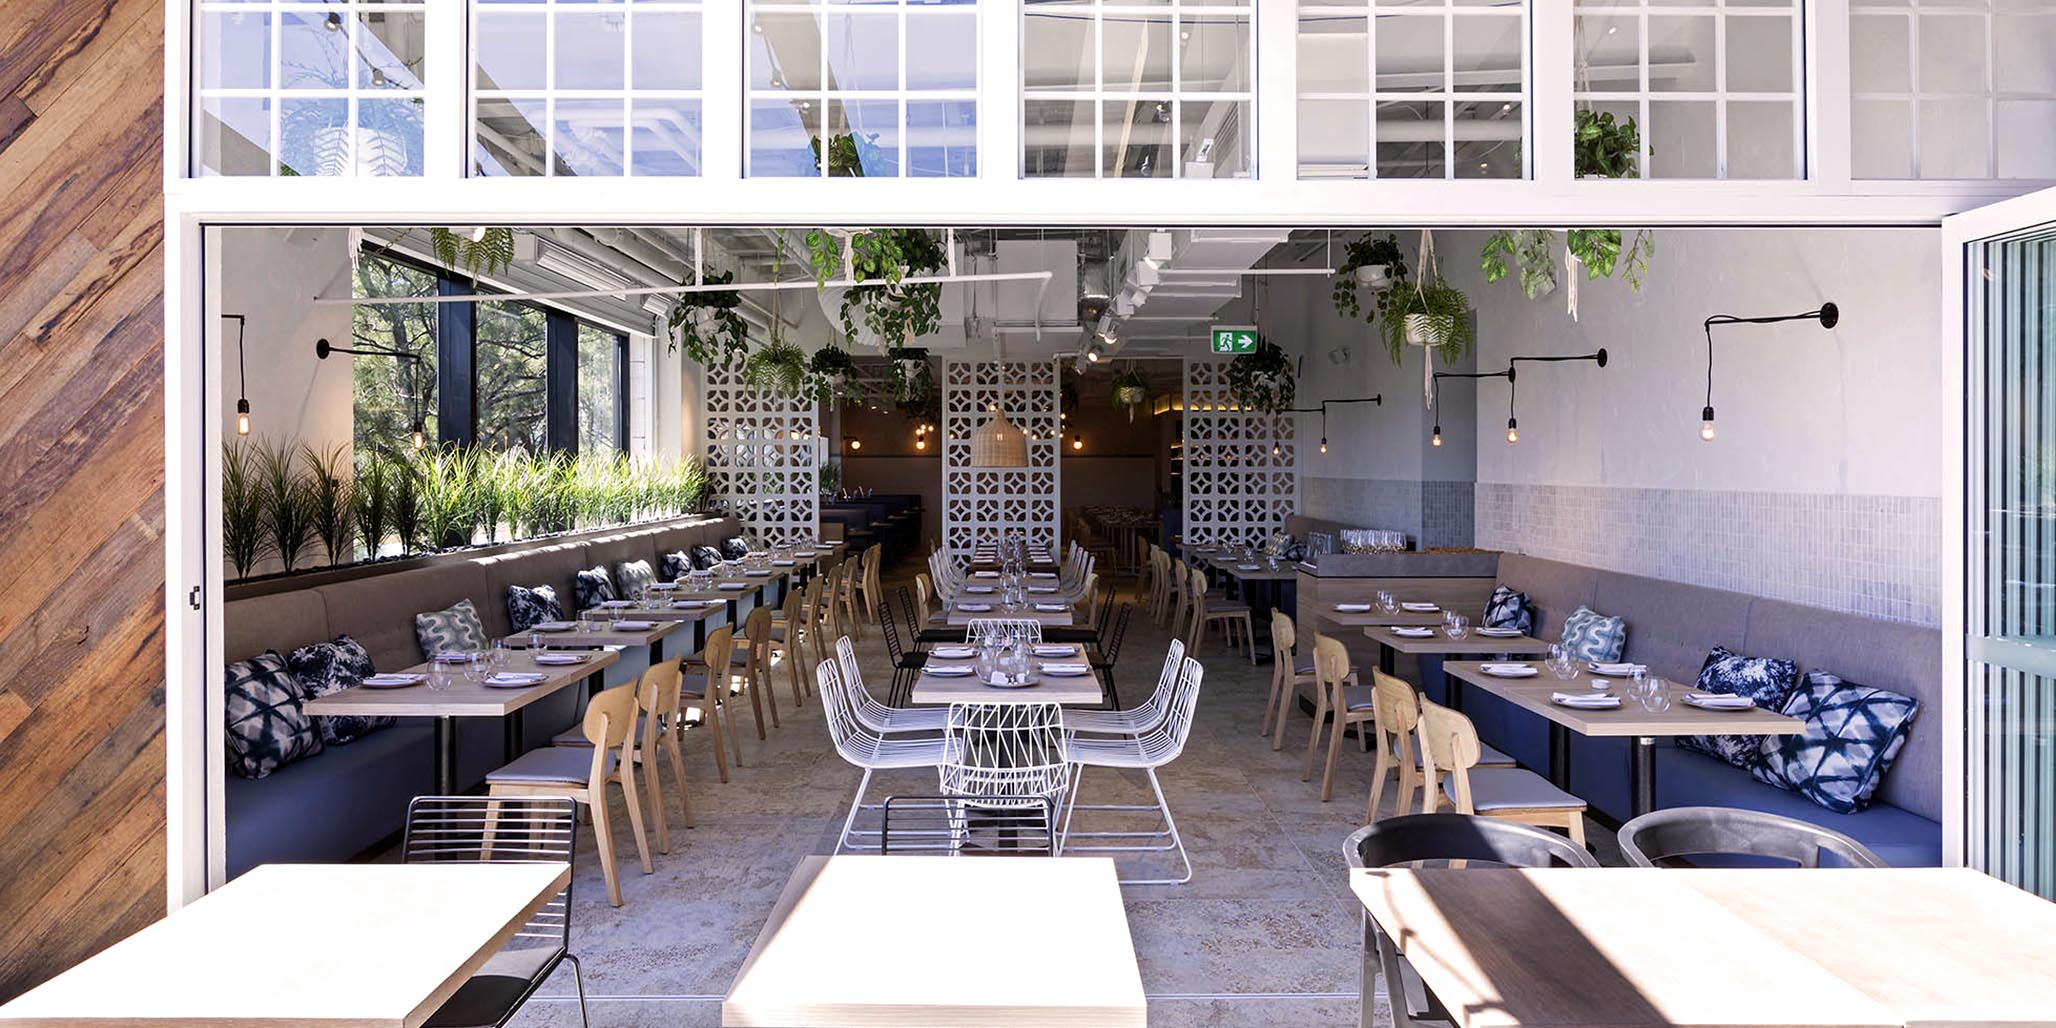 Brand & Website Design project in Sydney for hospitality venue Jensens Restaurant, a leader in the food service industry of Australia, image H